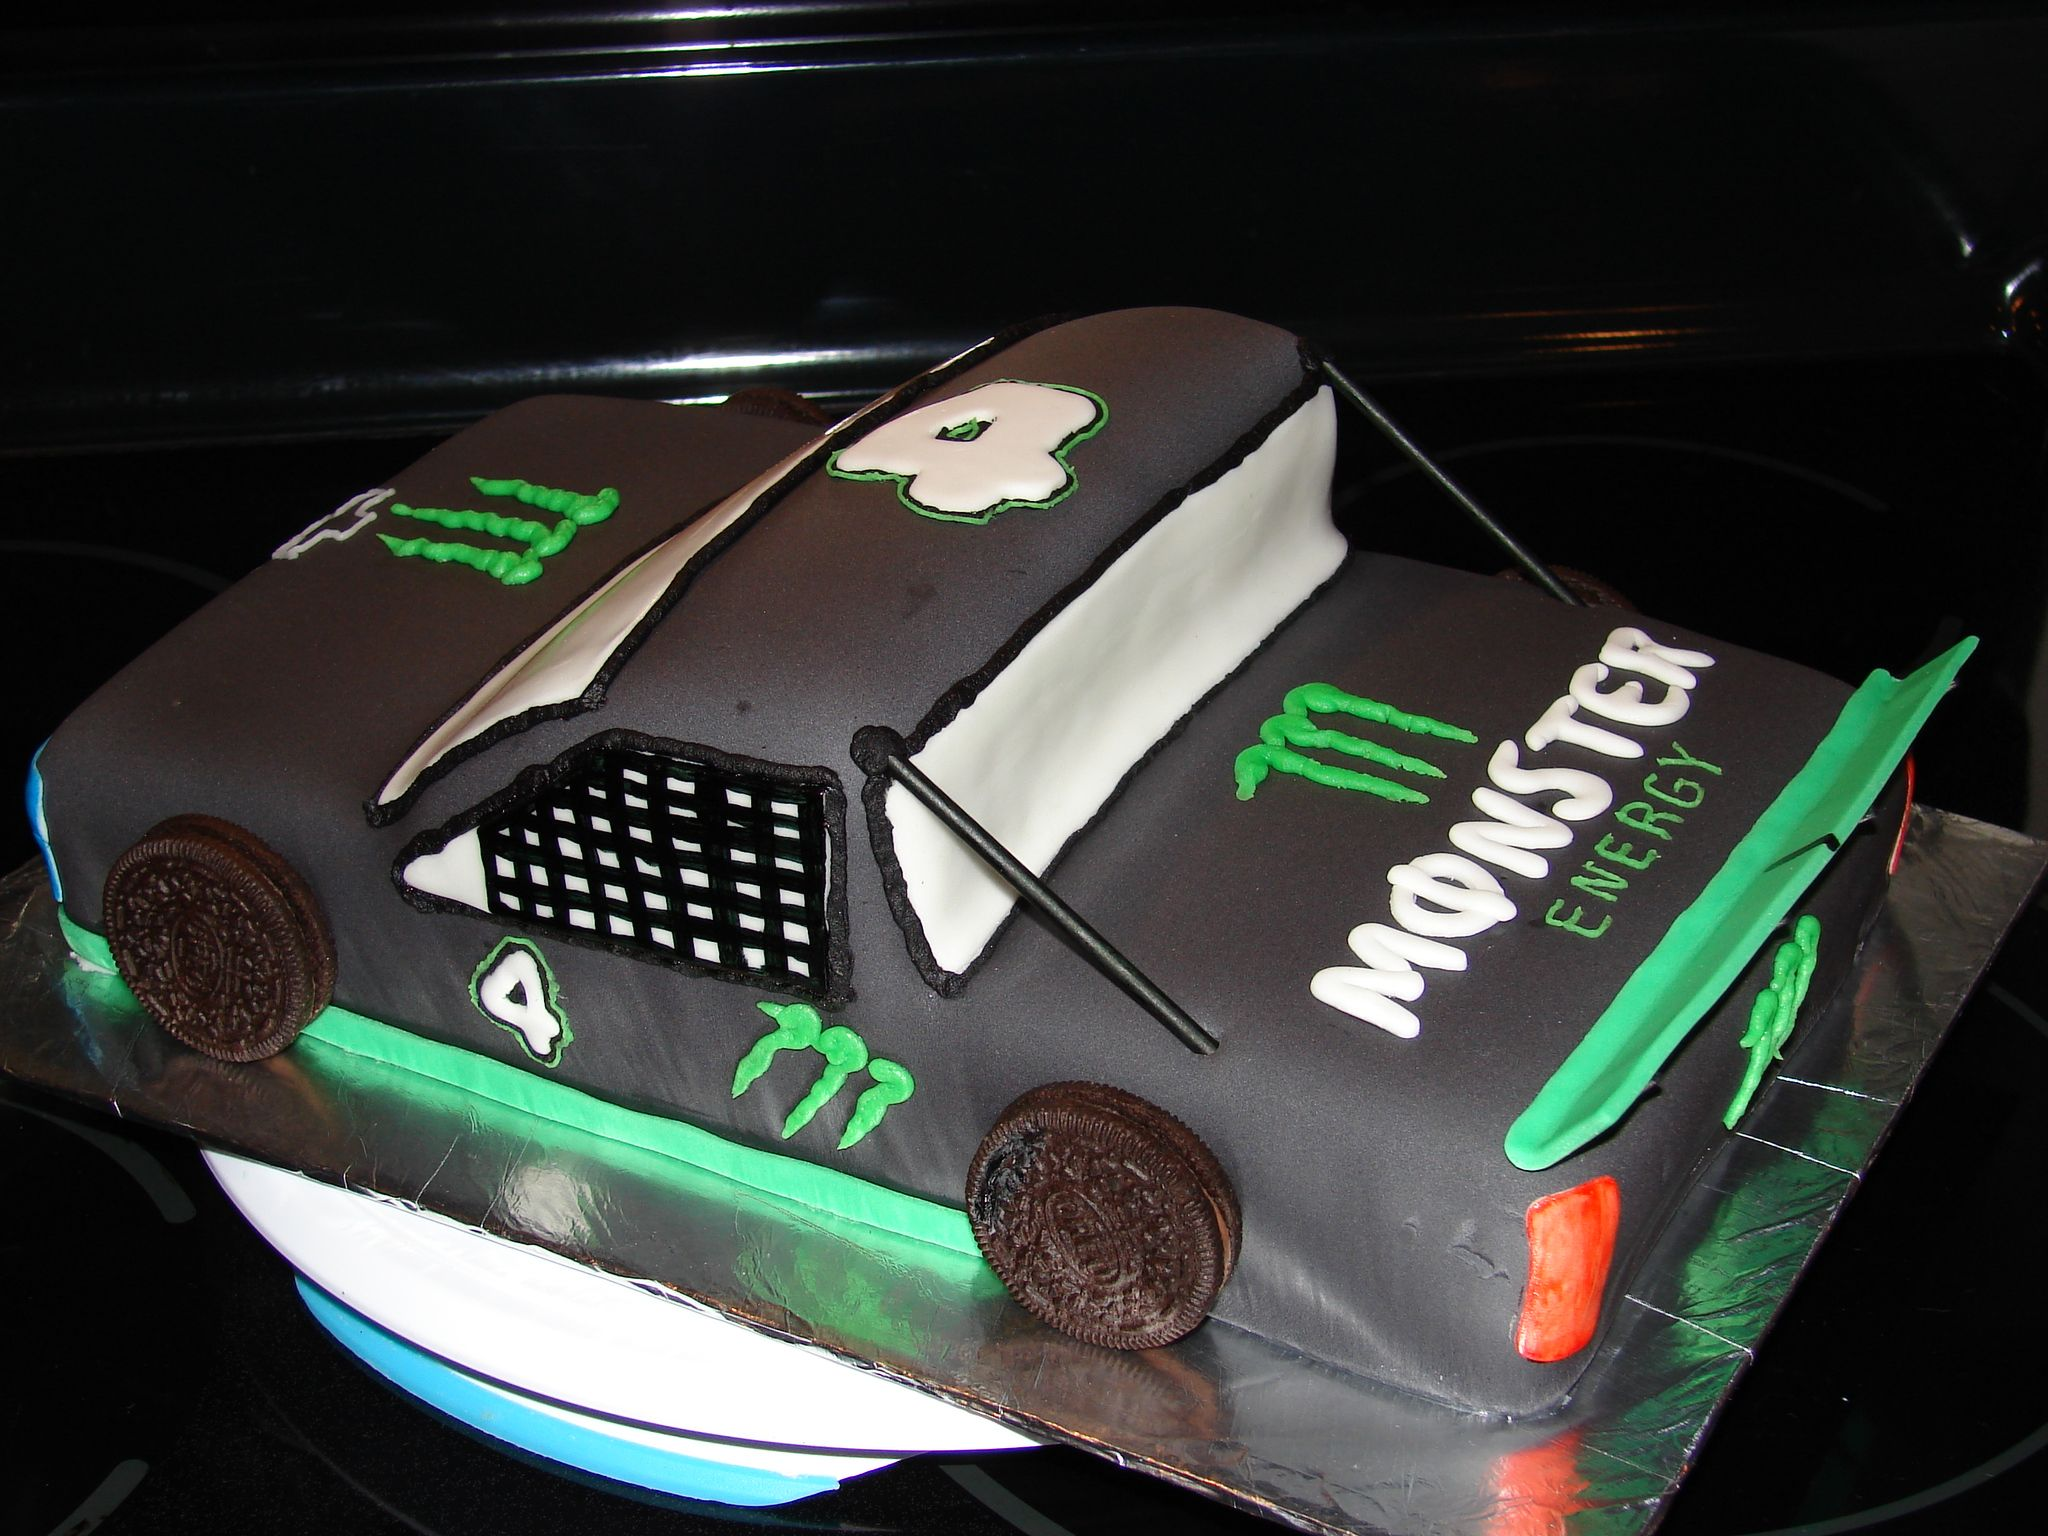 Mini Kühlschrank Monster Energy : Monster energy drink racing truck cake for a boy turning at a